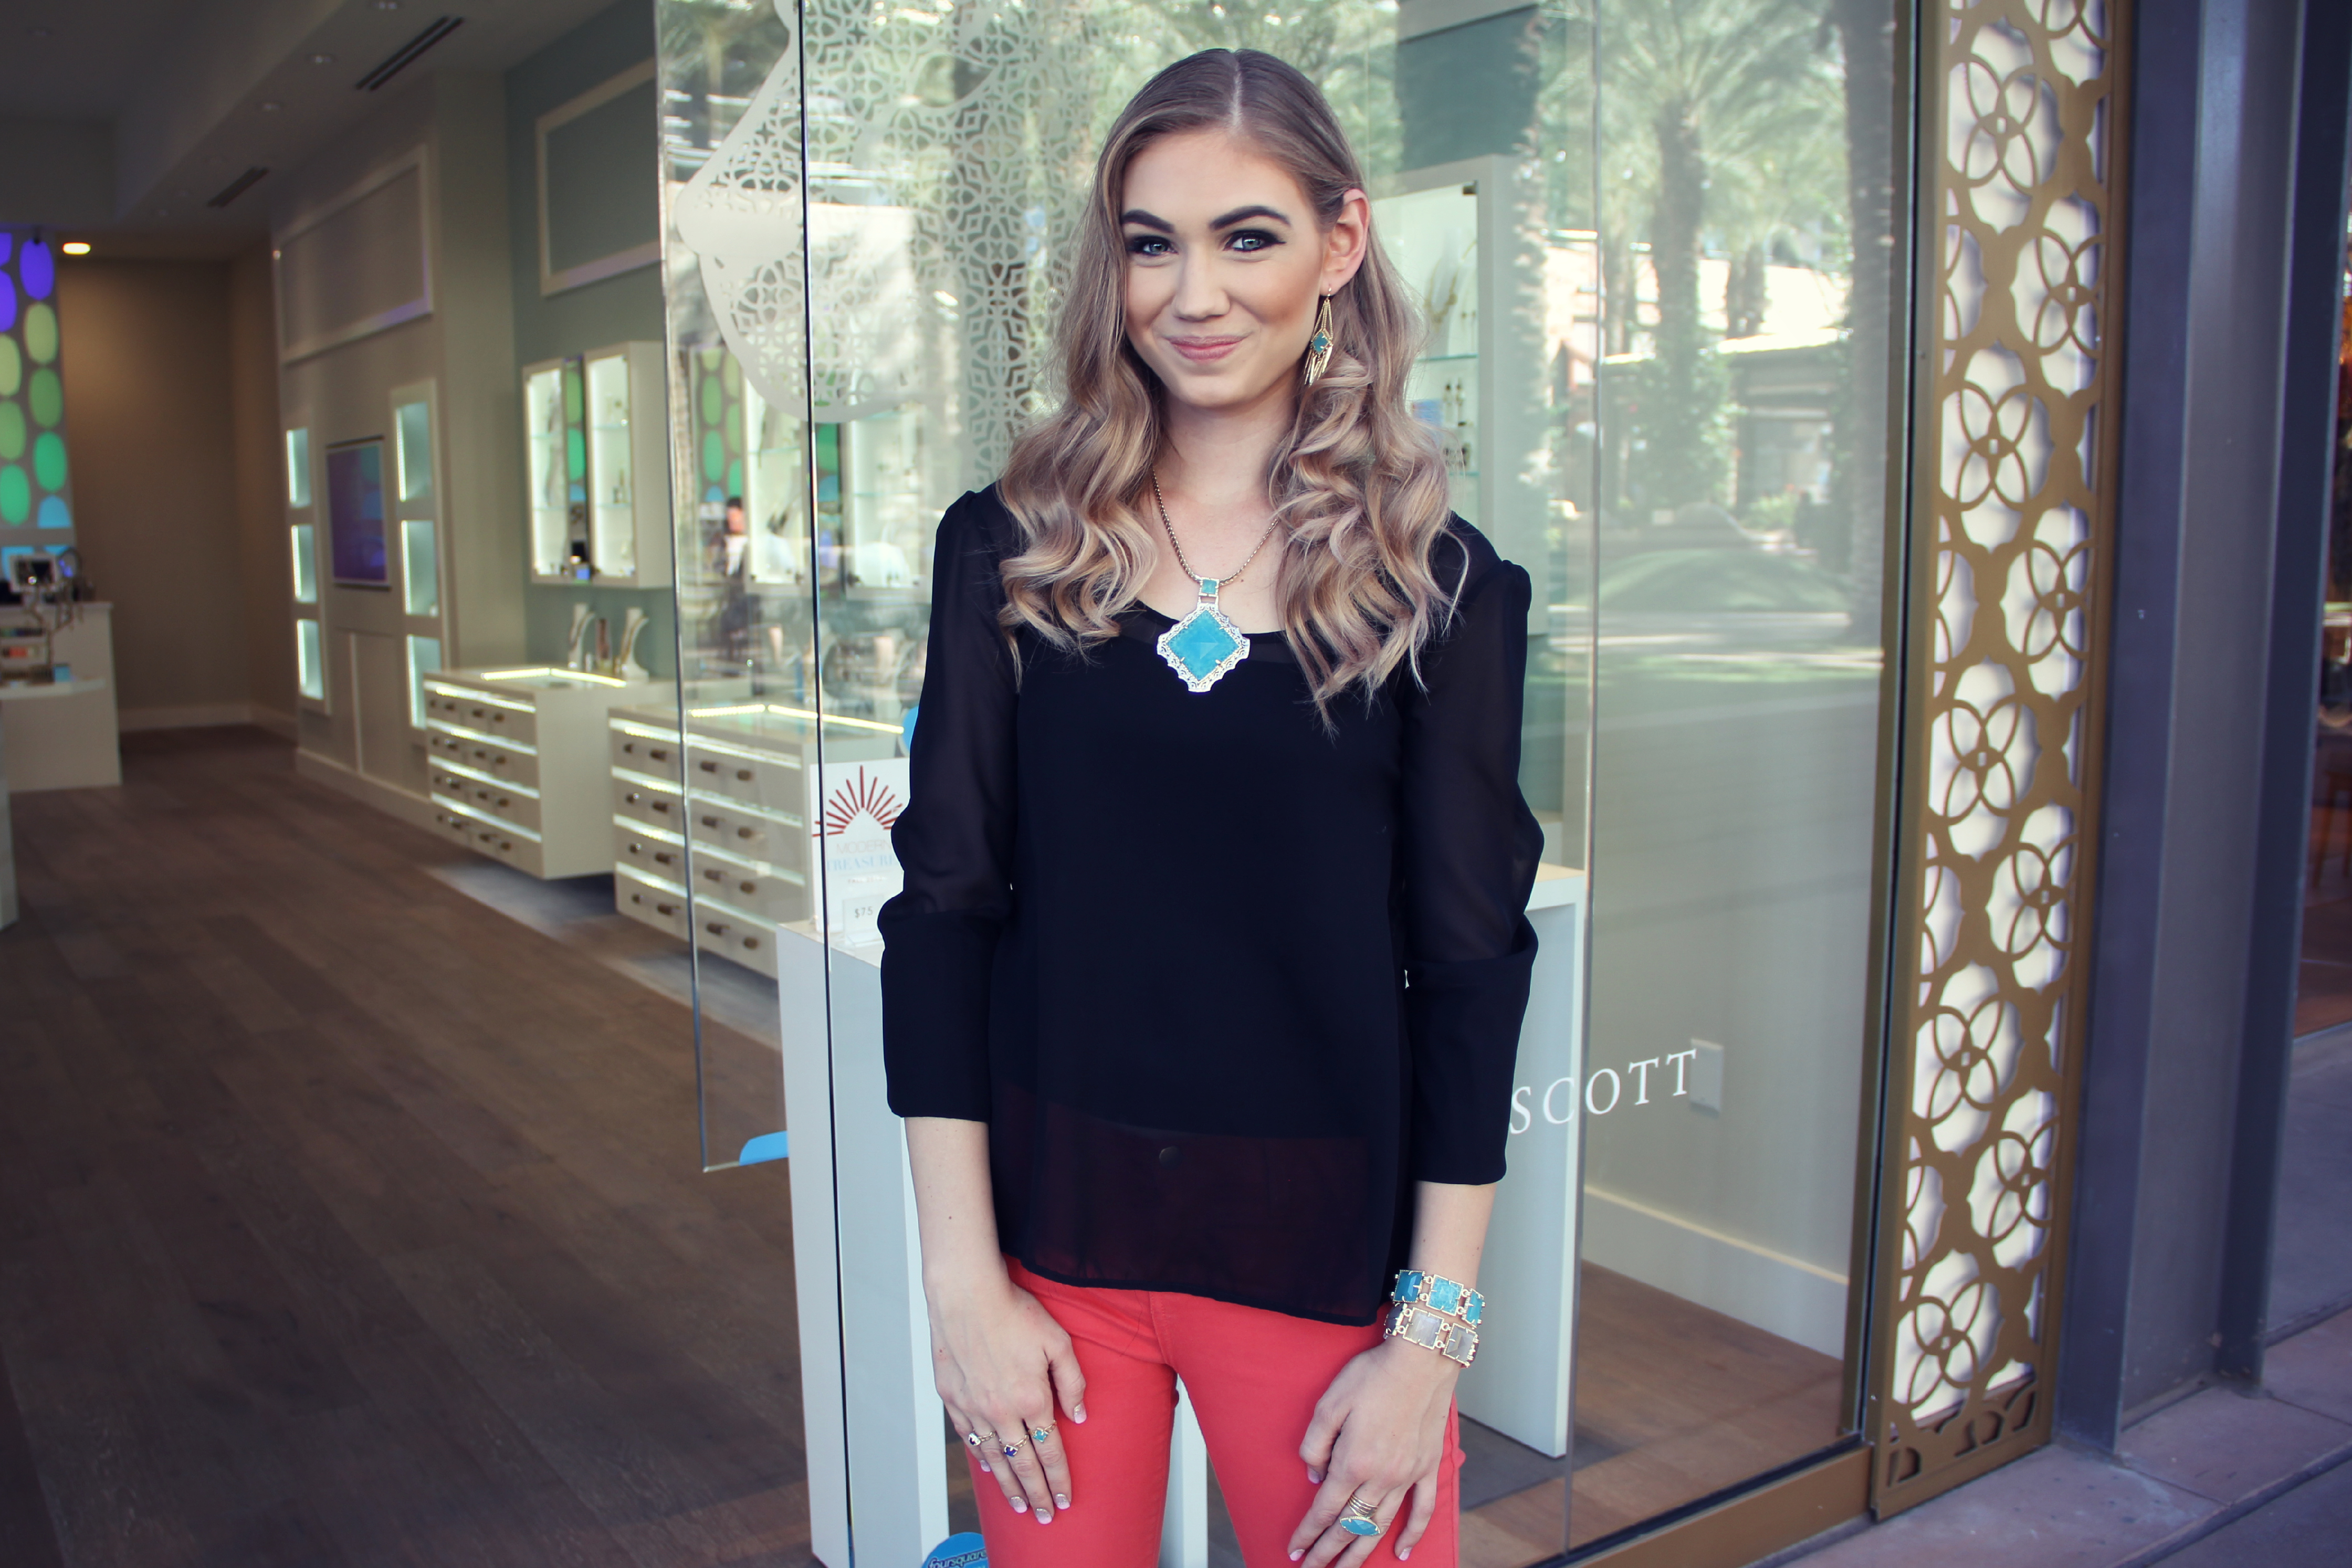 Kendra Scott Lindsay Viker Couture in the Suburbs